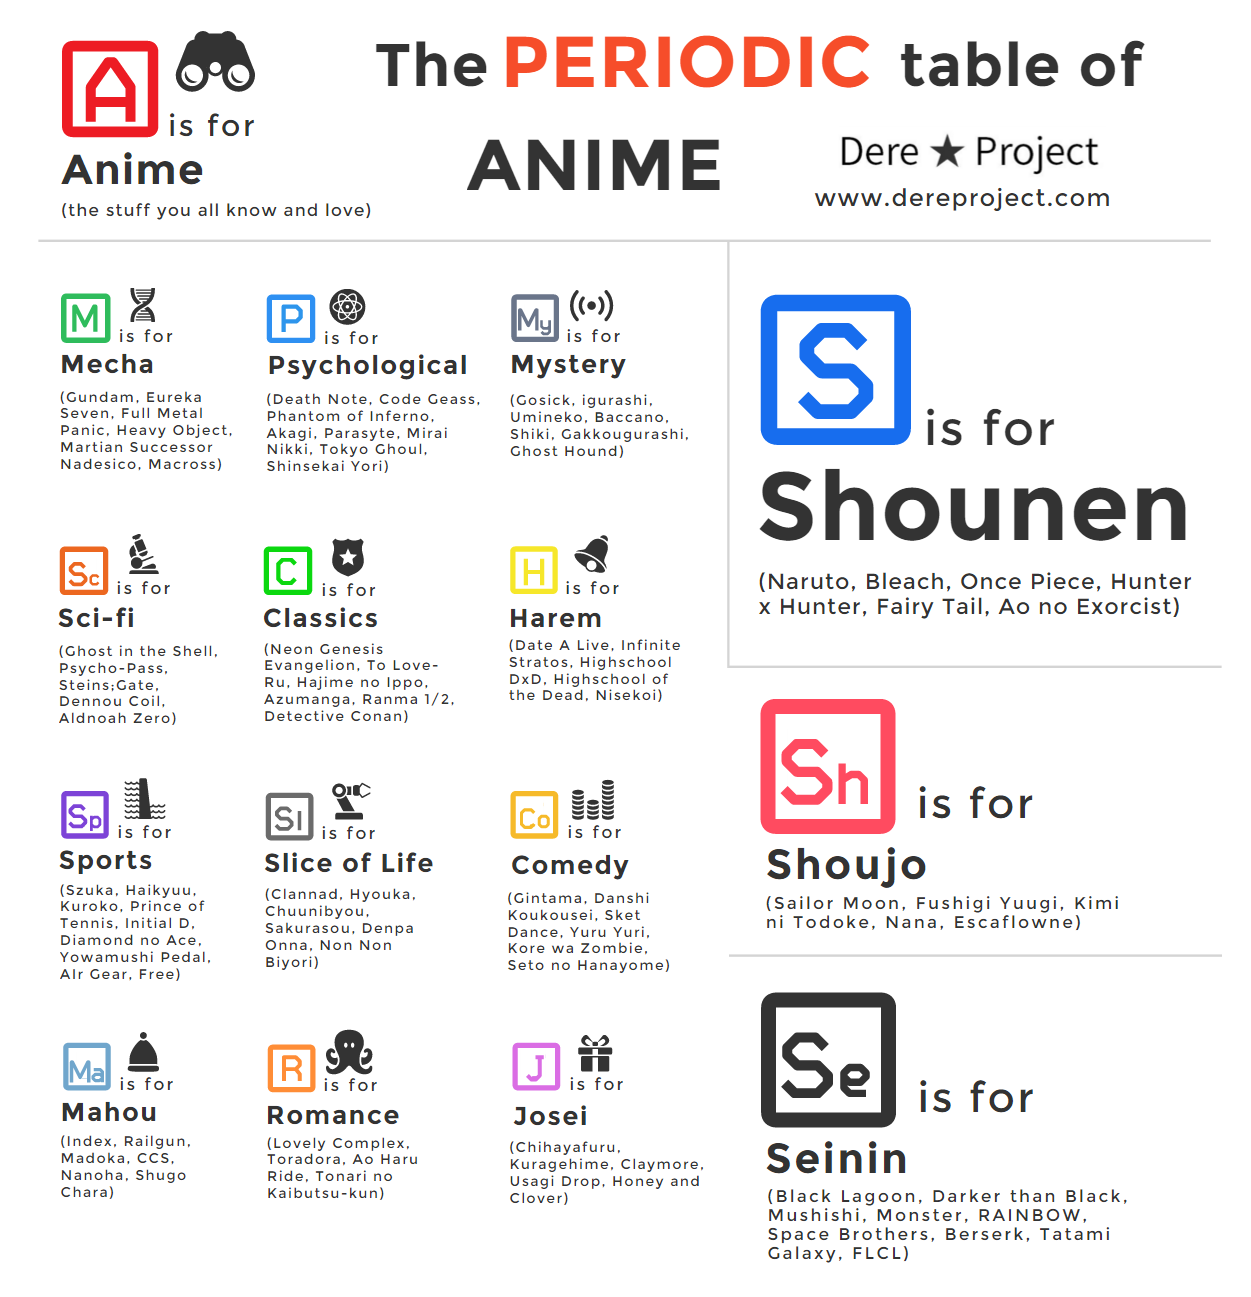 The periodic table of anime by dere project general anime periodic table urtaz Gallery